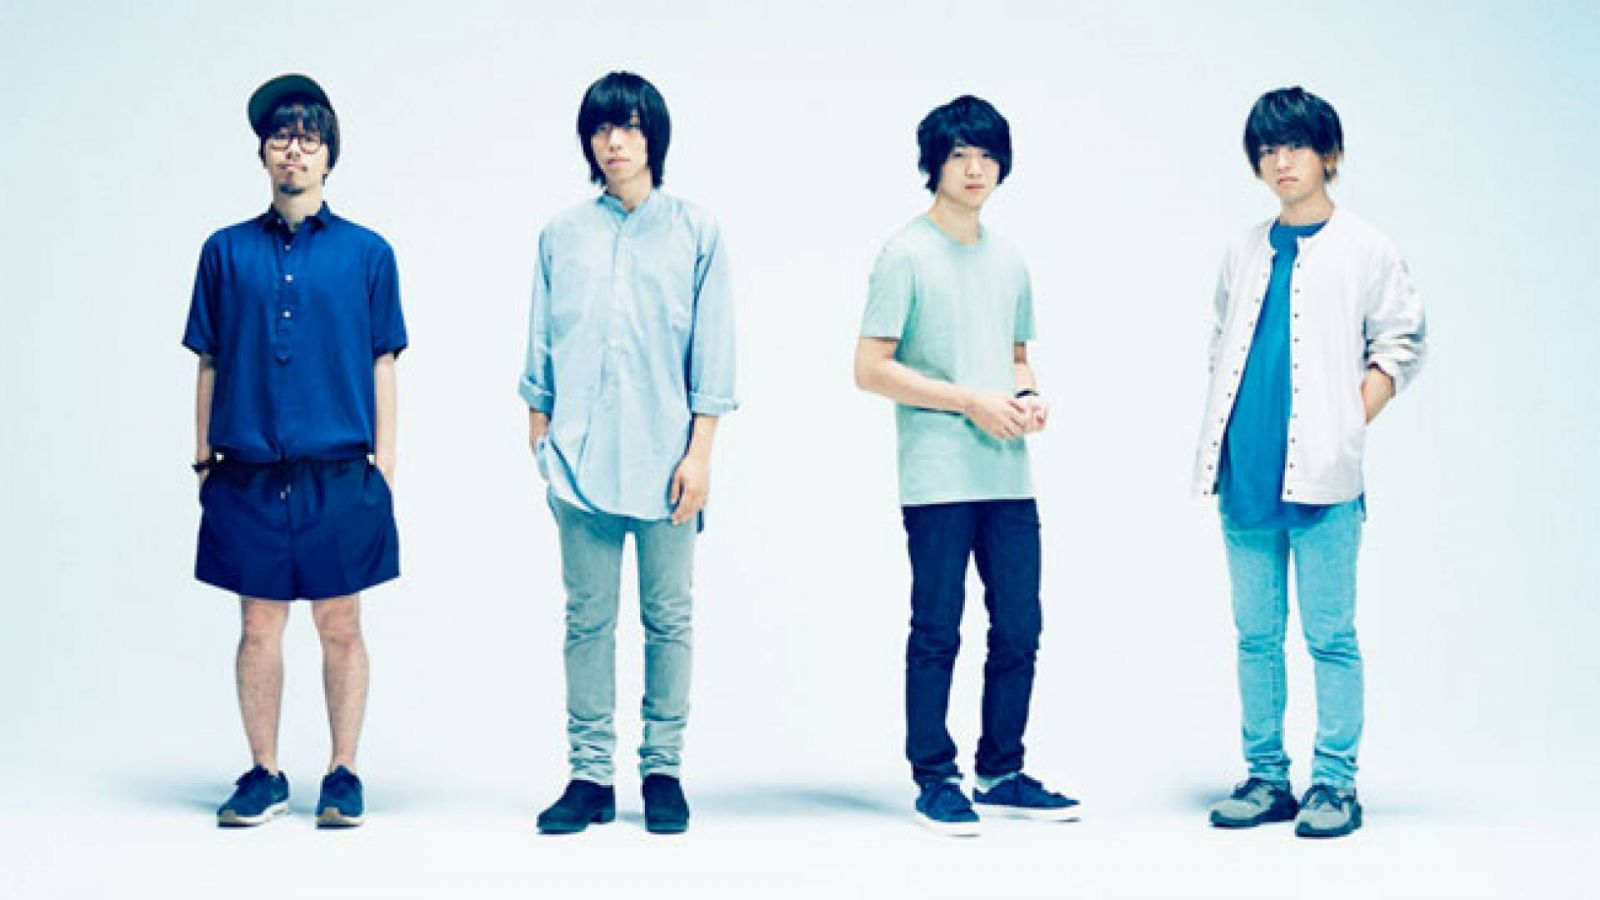 androp © androp